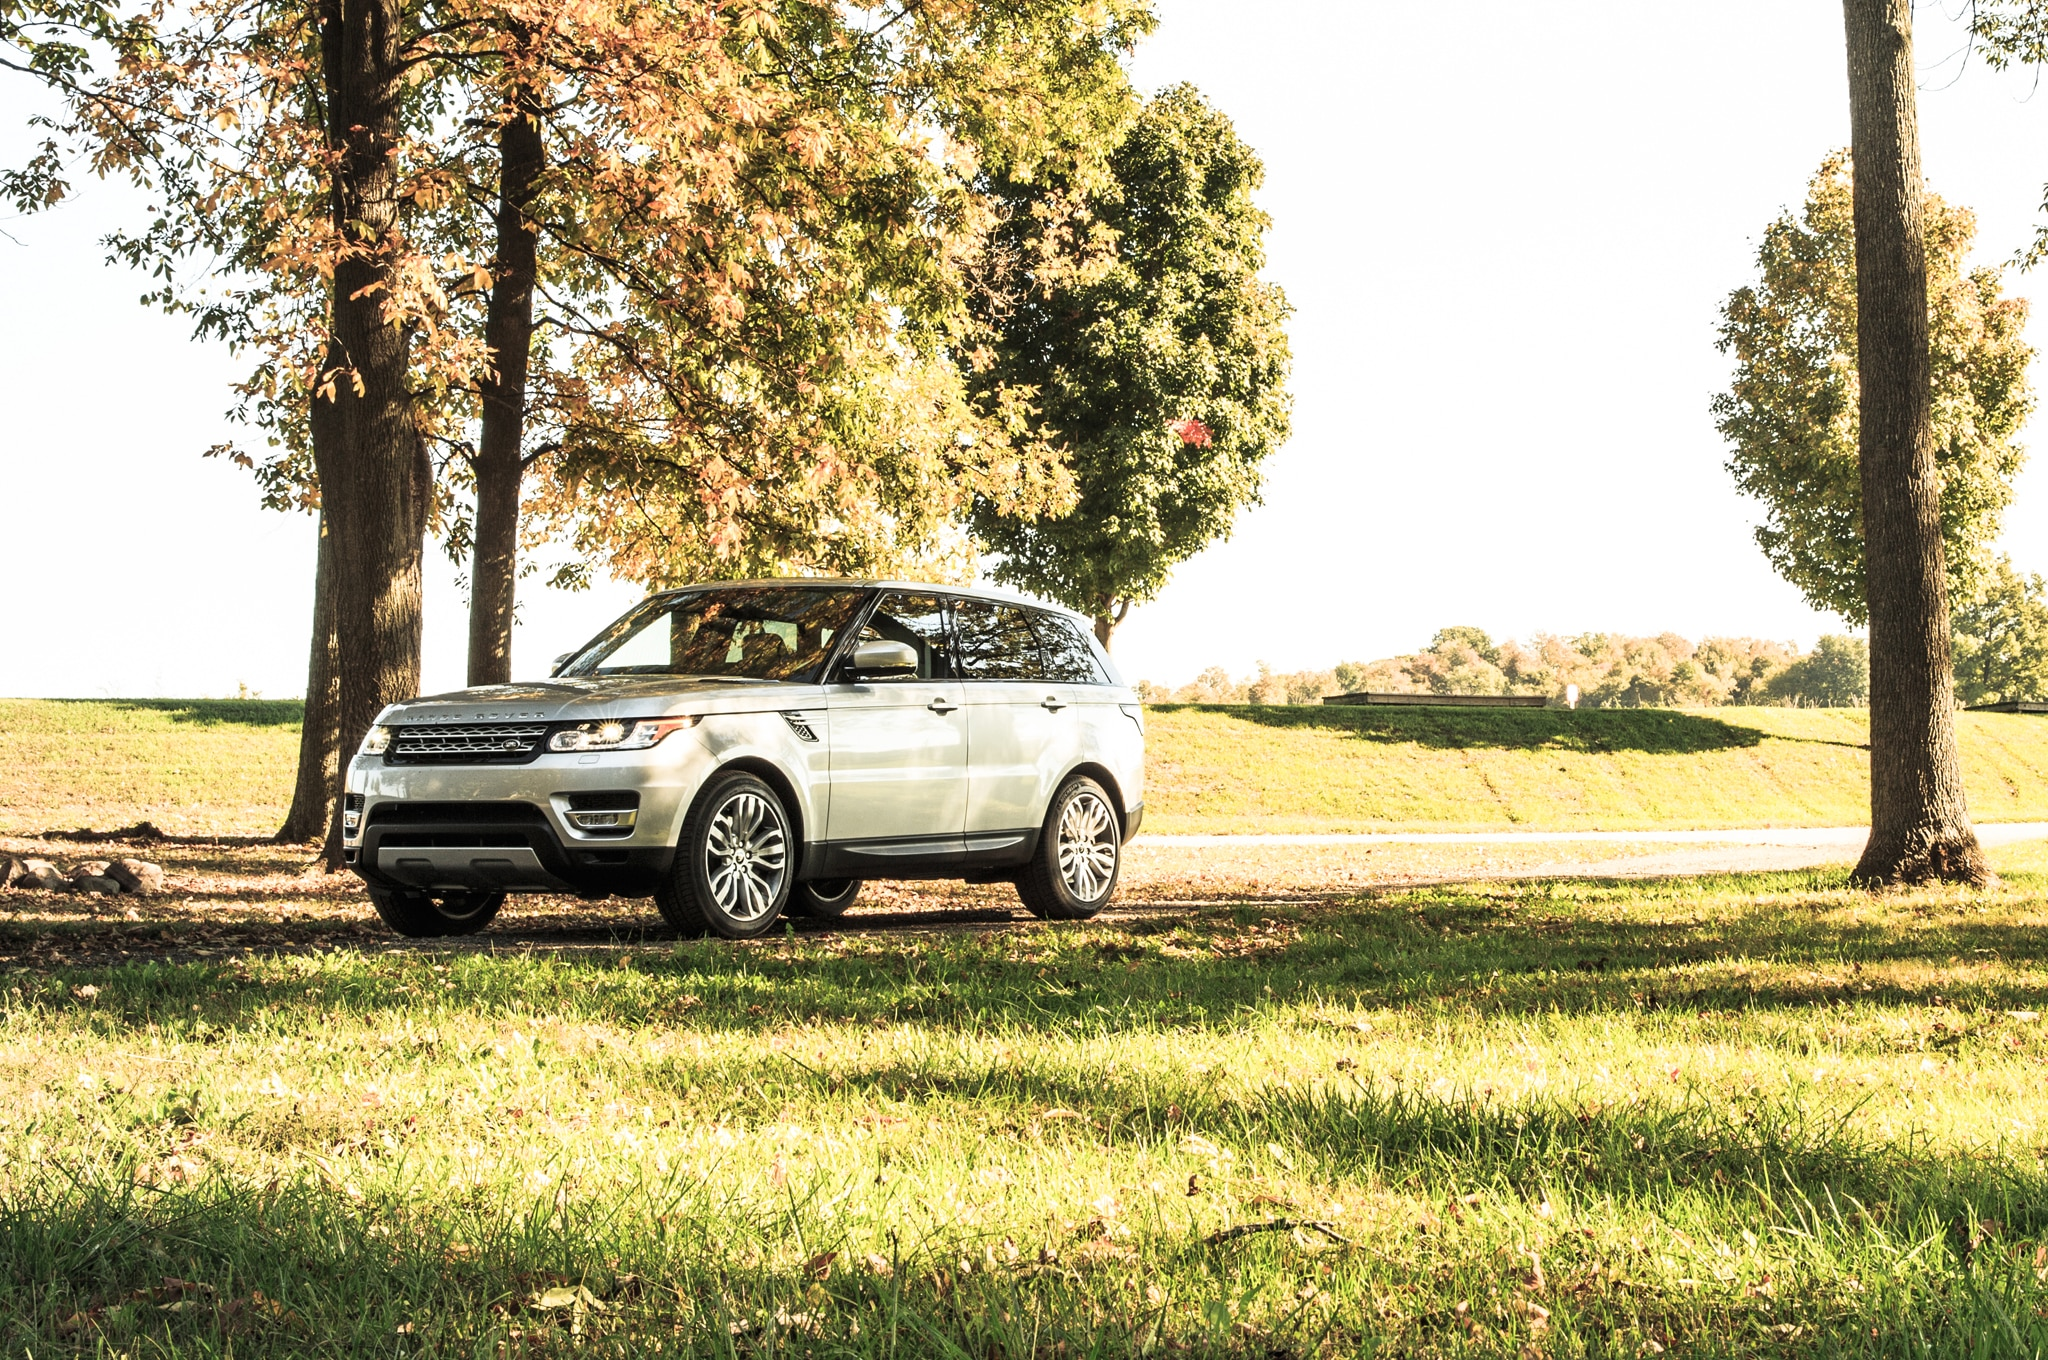 2014 Land Rover Range Rover Sport Automobile Of The Year Contender 31